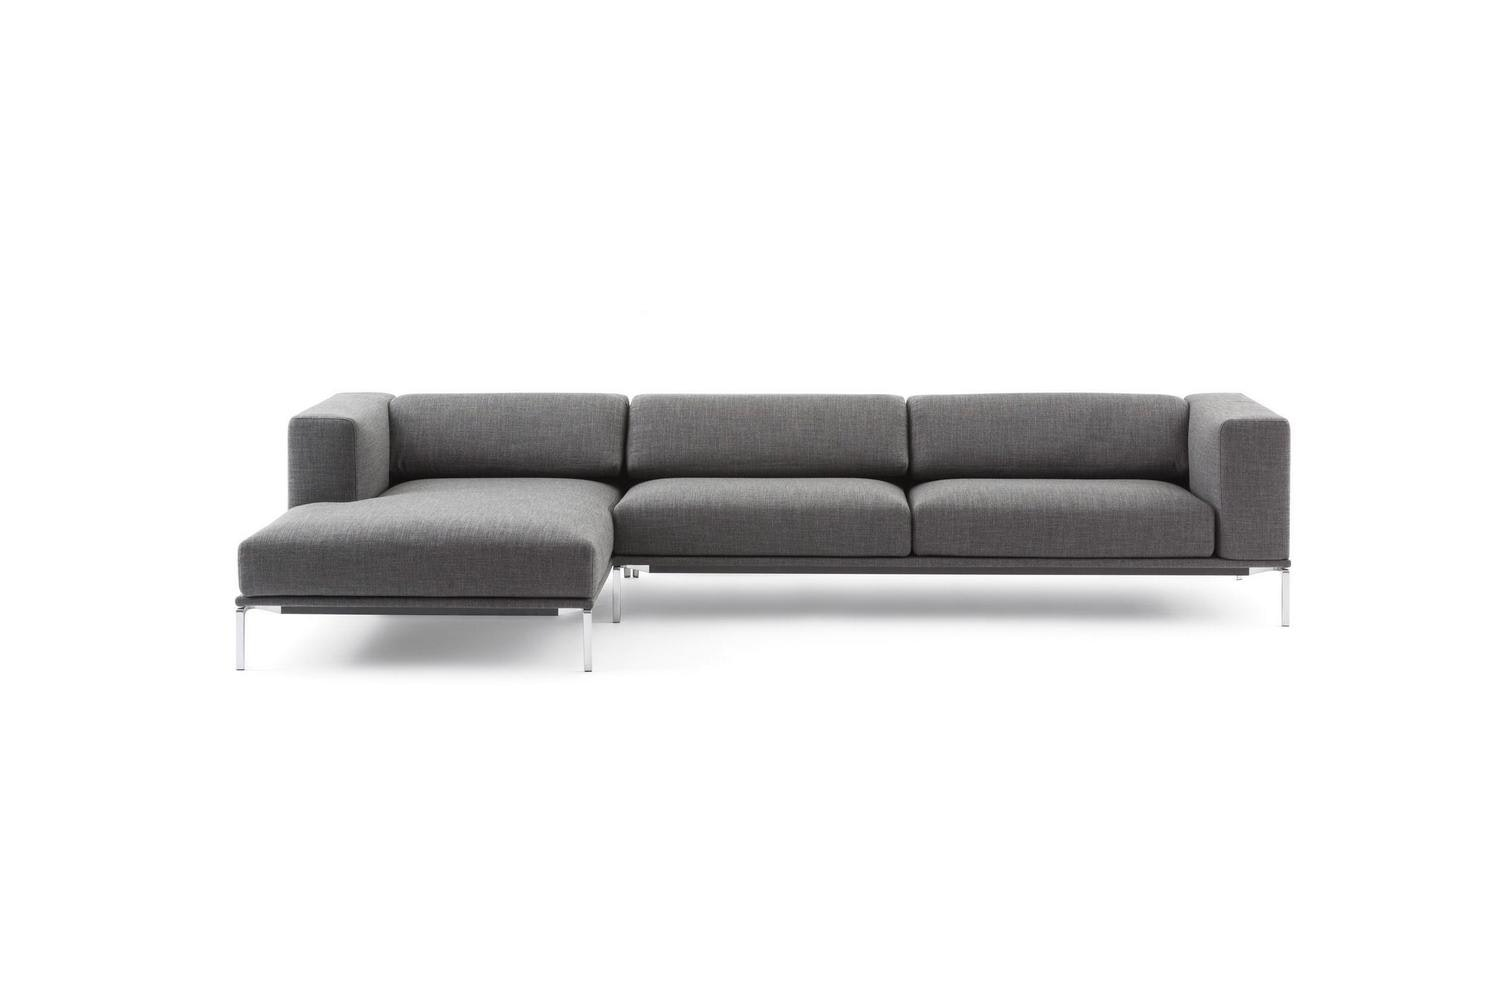 191 Moov Sofa by Piero Lissoni for Cassina